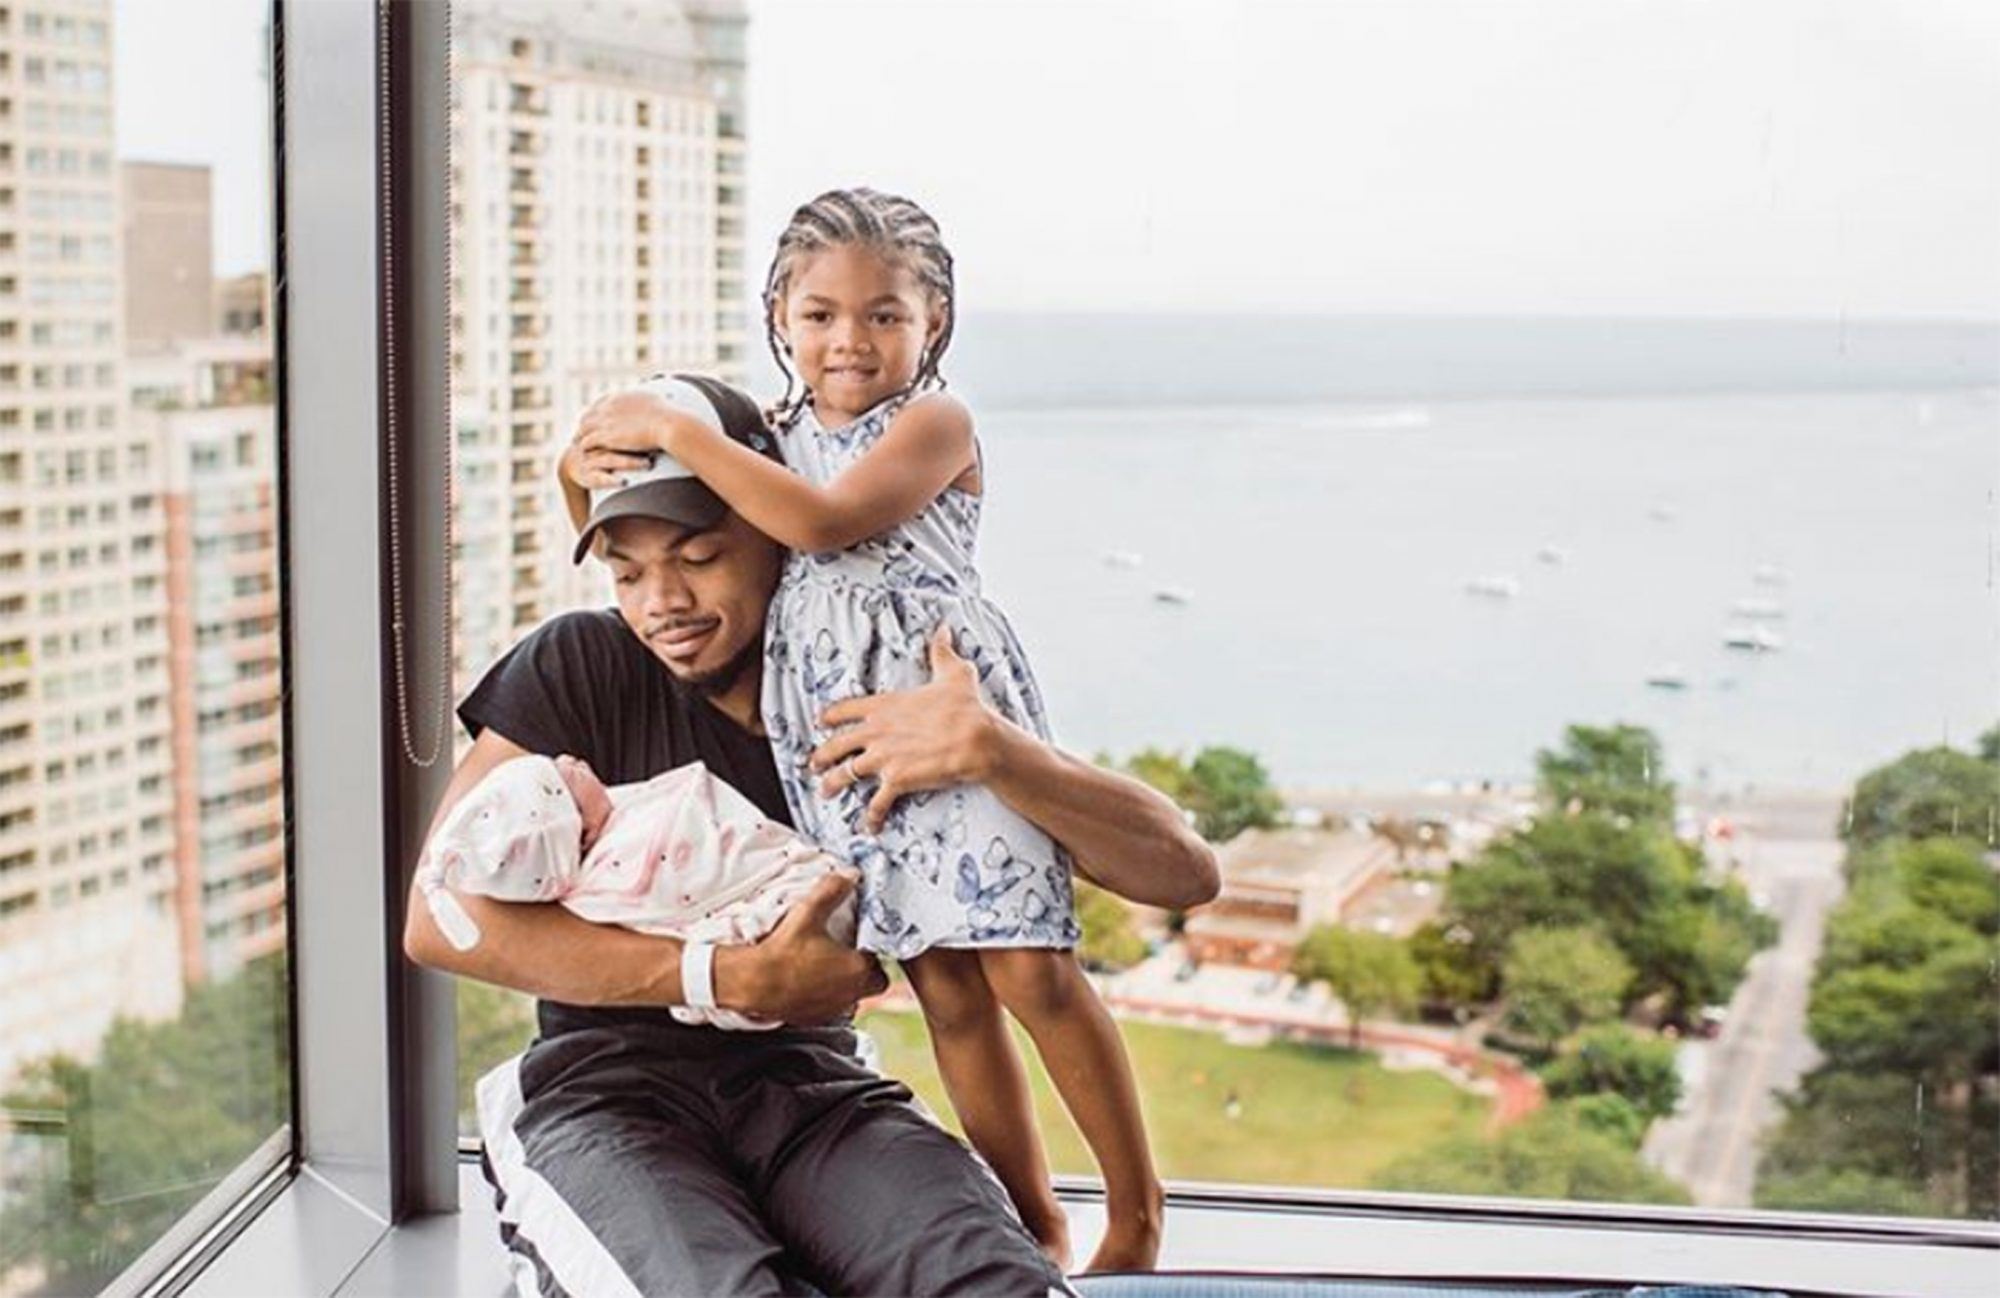 Chance the Rapper daughters